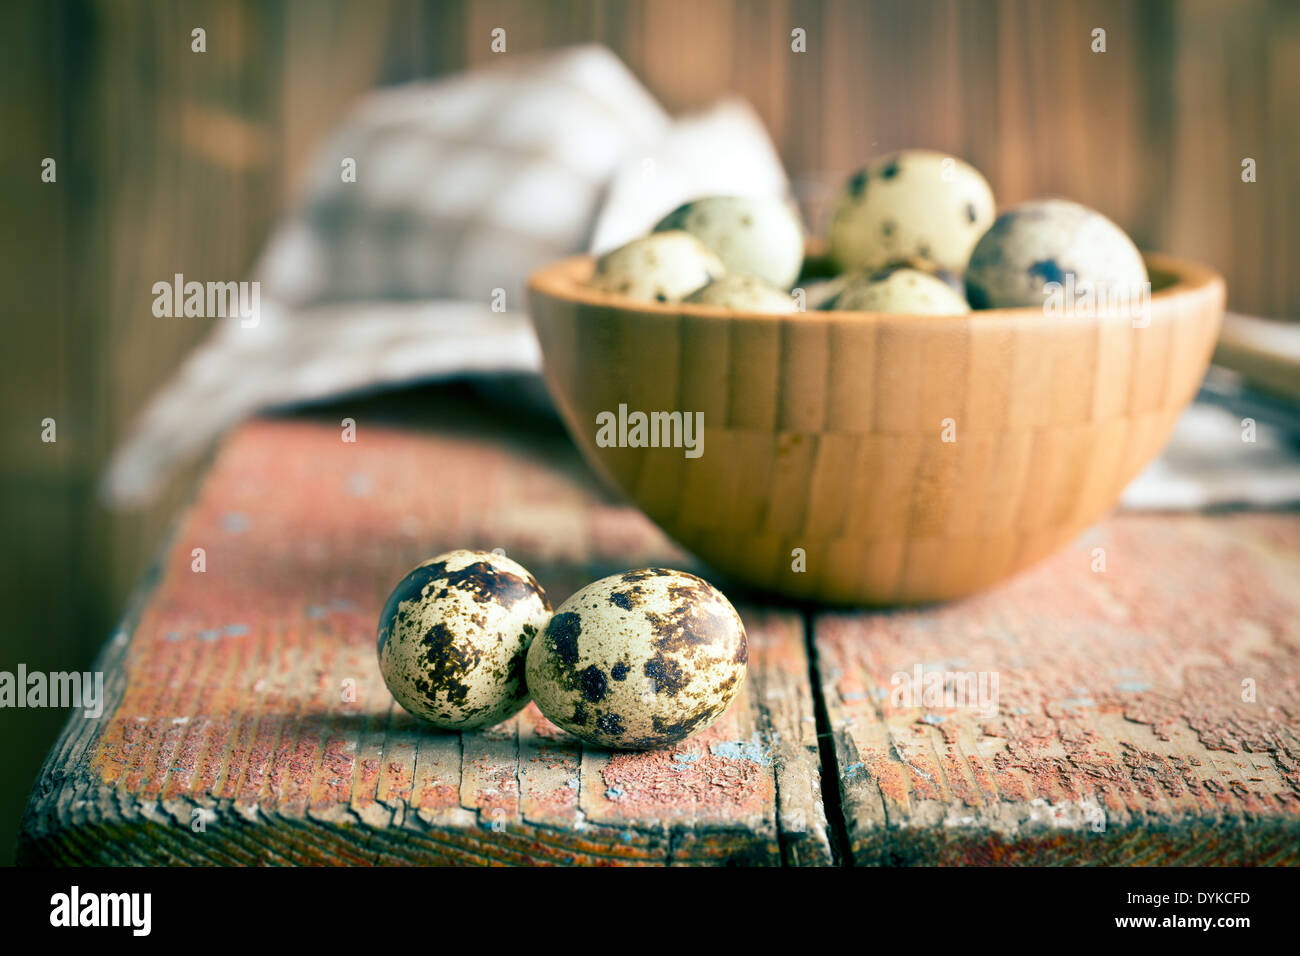 the quail eggs on old wooden table - Stock Image